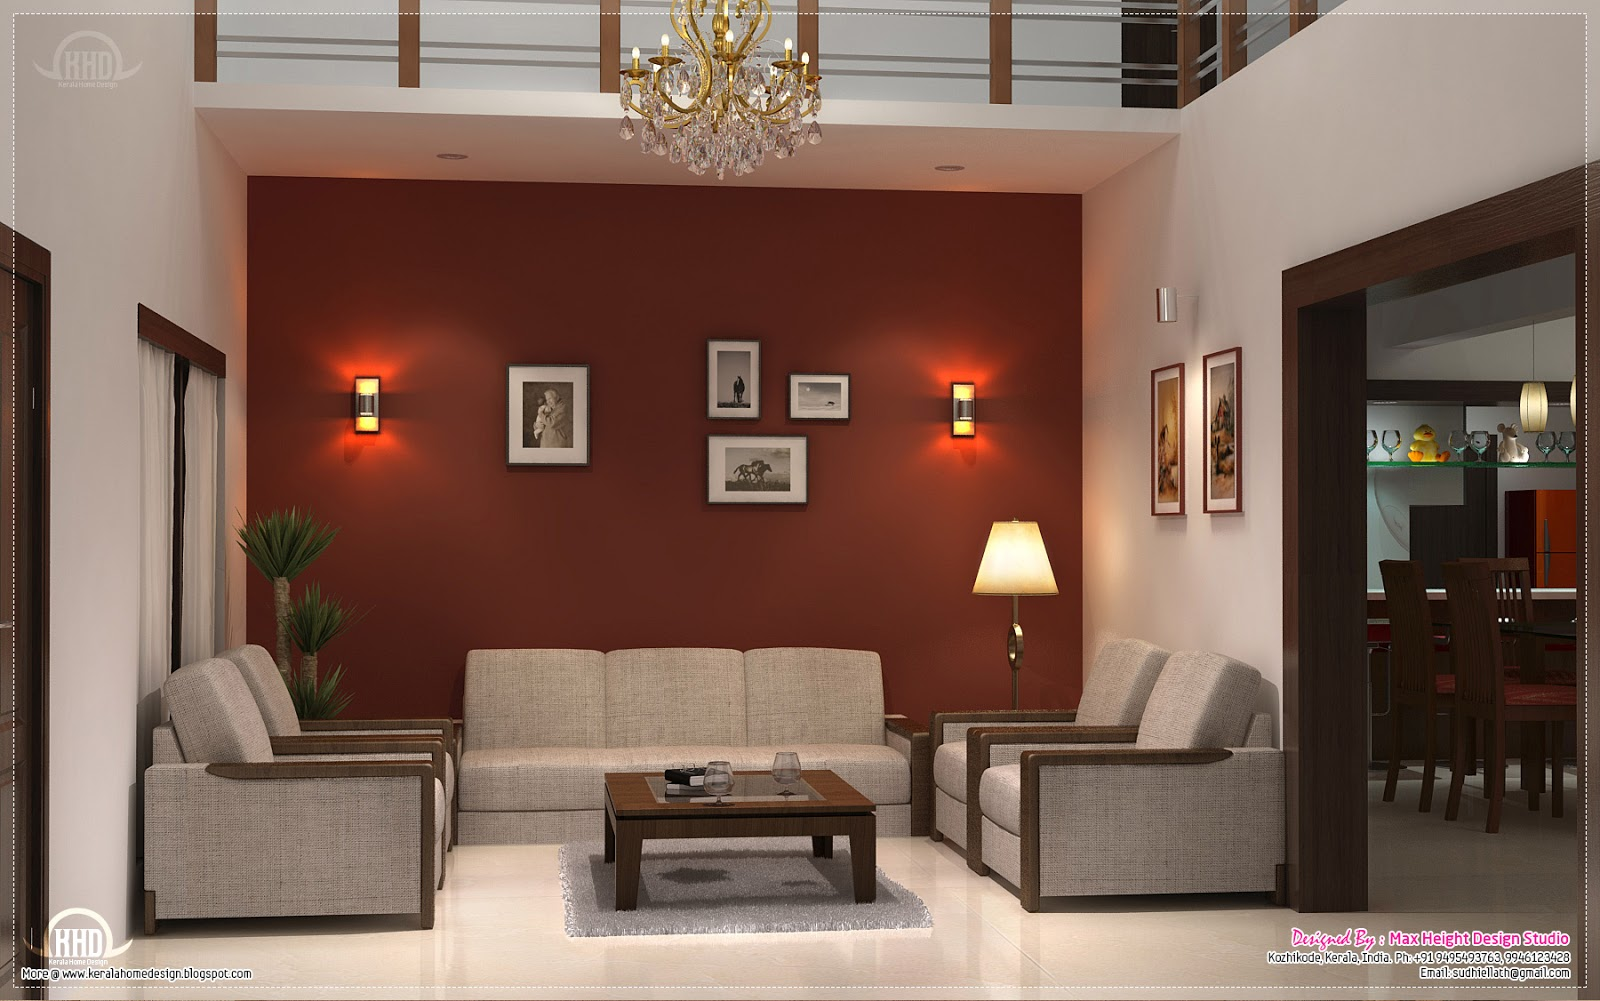 Home interior design ideas home kerala plans for Ideas for home